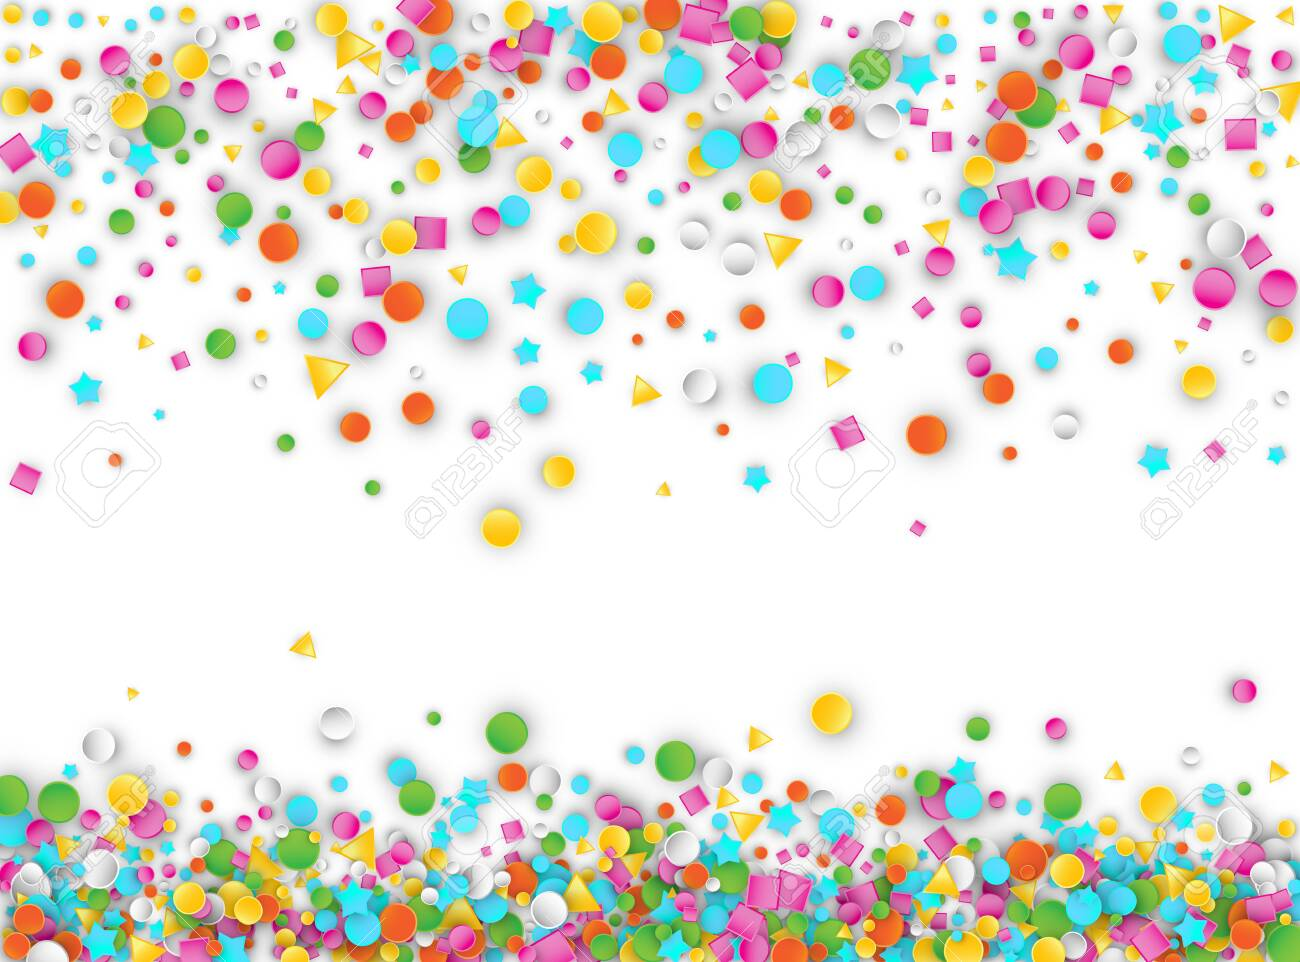 Colored Carnaval Confetti Explosion Background with Stars, Squares, Triangles, Circles. Abstract Geometric Shapes 3d Vector Pattern for Birthday and Party Design - 126185341